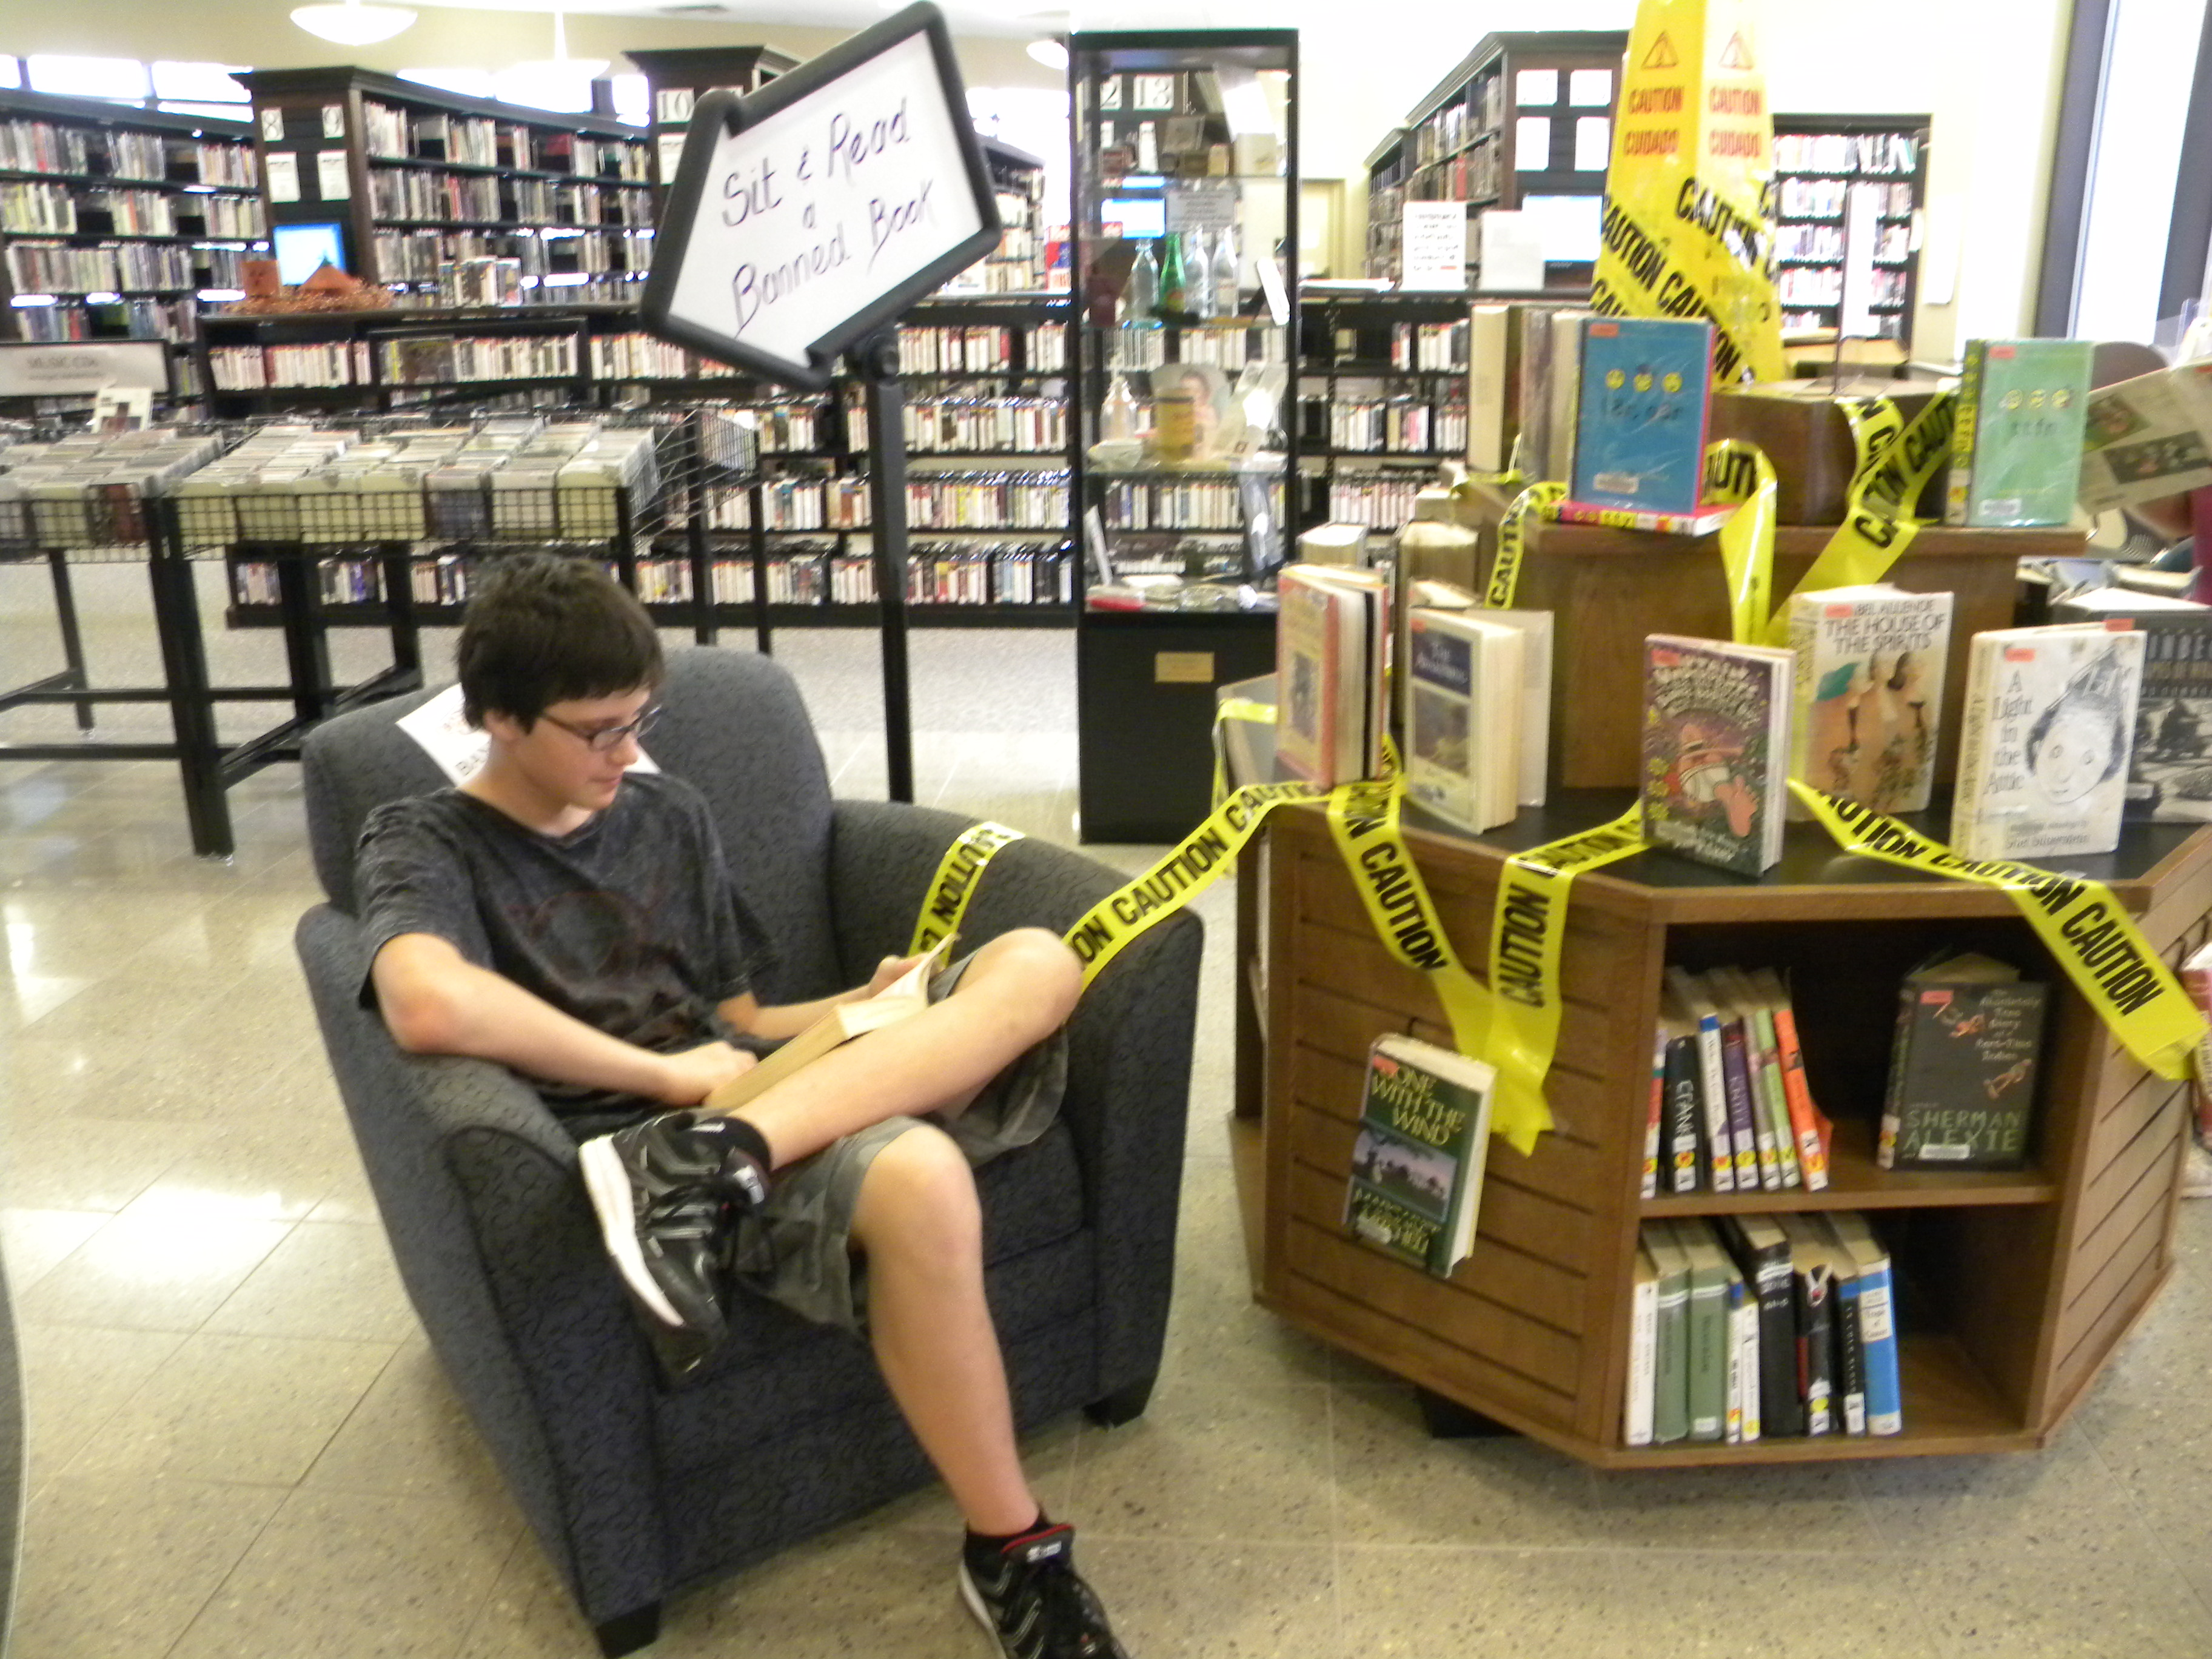 Teen Advisory Group member Danijel Divkovic reads a banned book in the display area at Guthrie Memorial Library in Hanover, Pennsylvania.